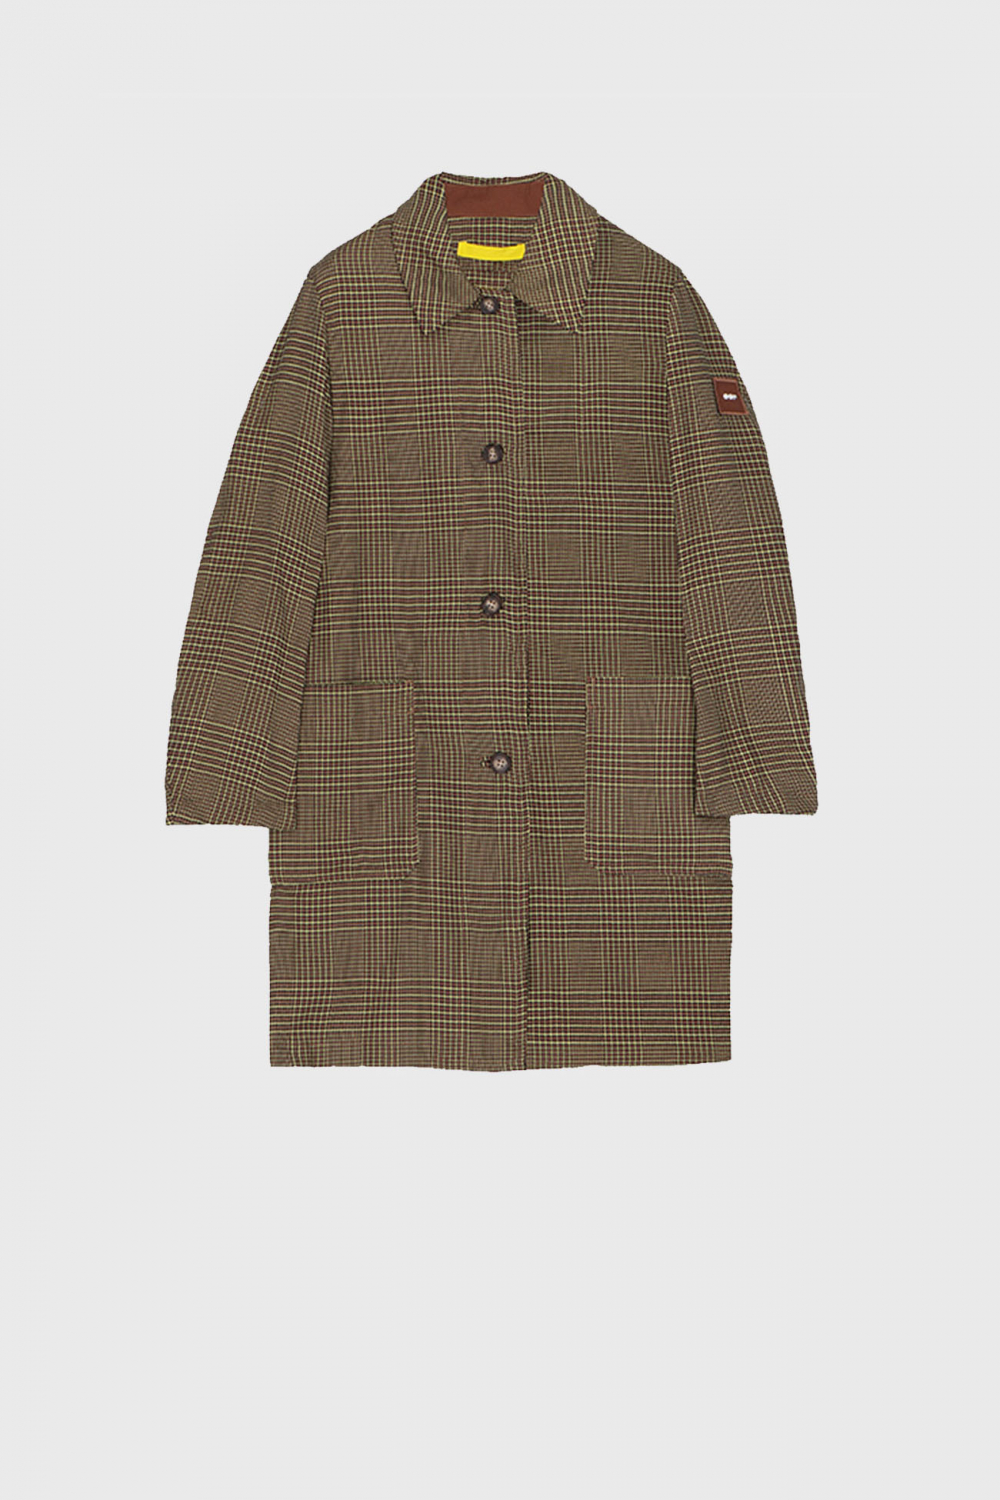 Men's long raincoat with shirt neckline in yellow check dyed yarn